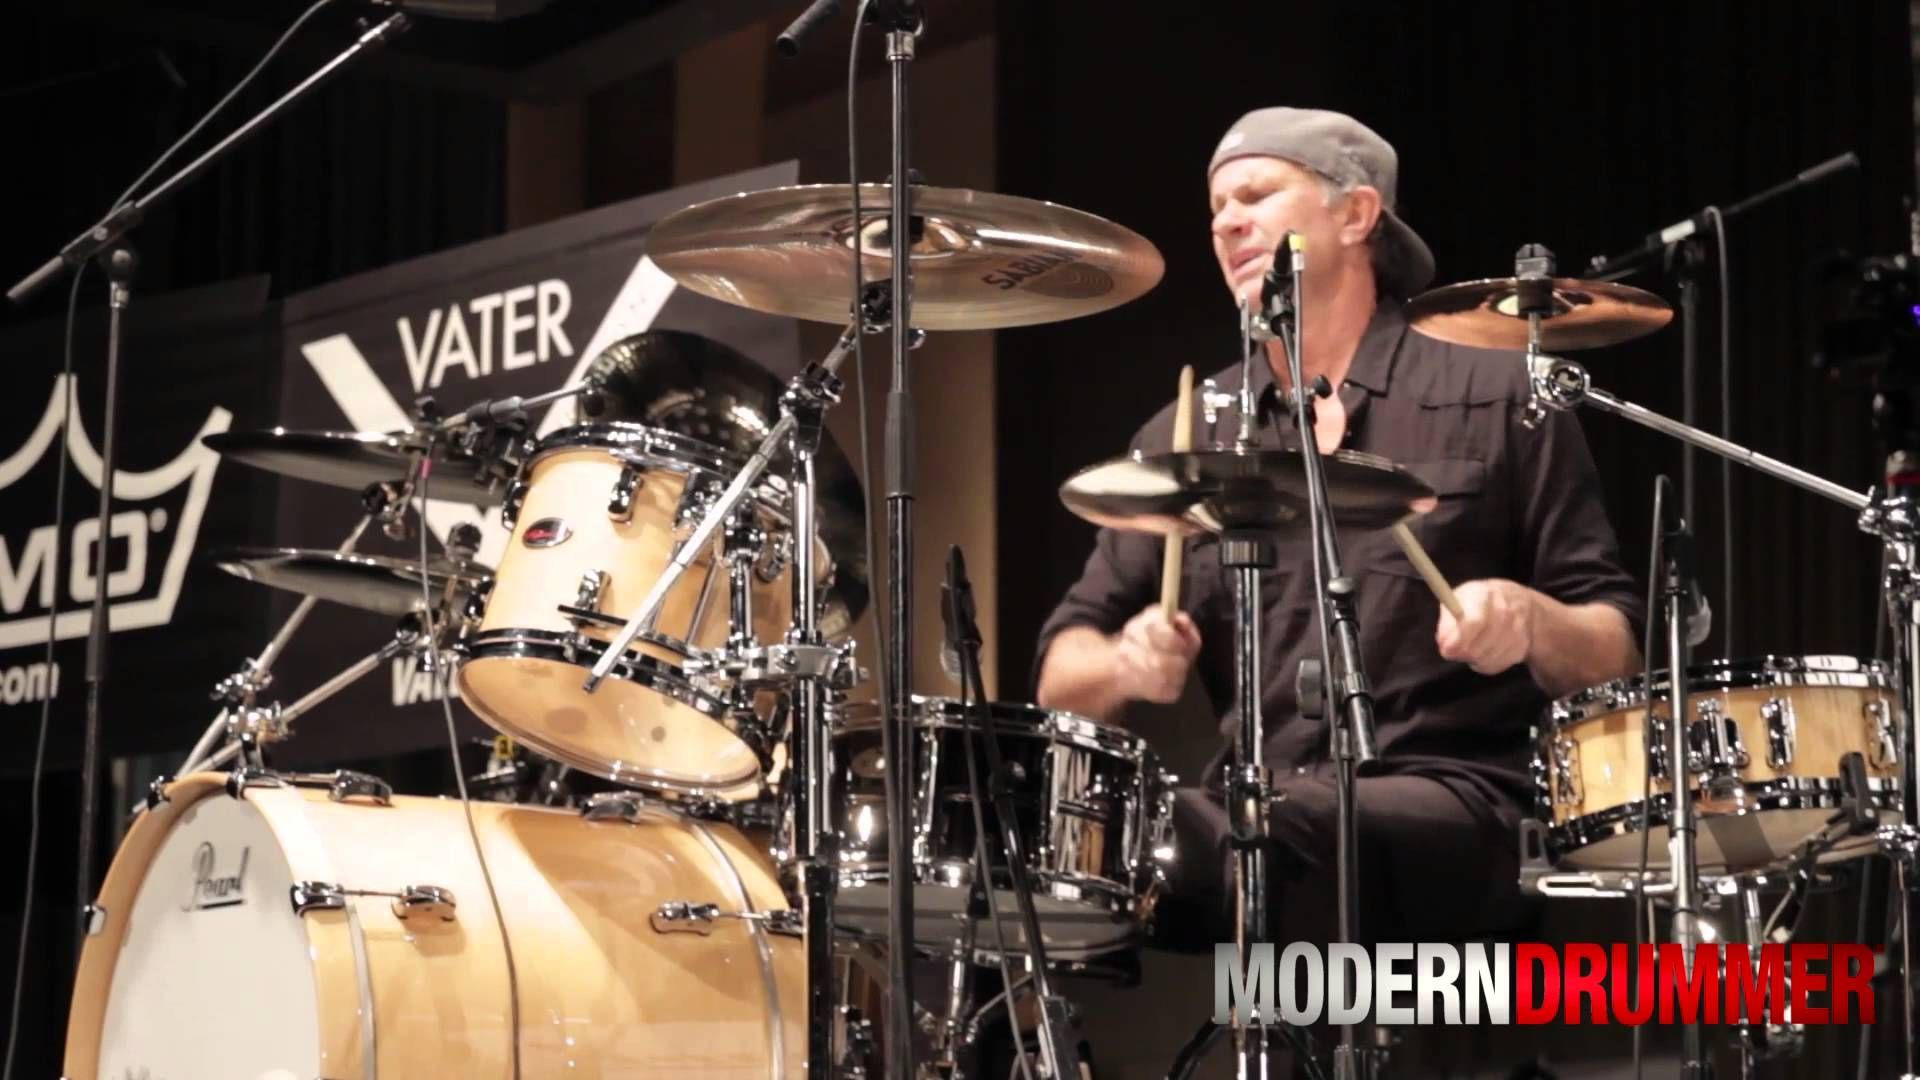 Red Hot Chili Peppers Drummer Chad Smith Solo Excerpt From Pasic